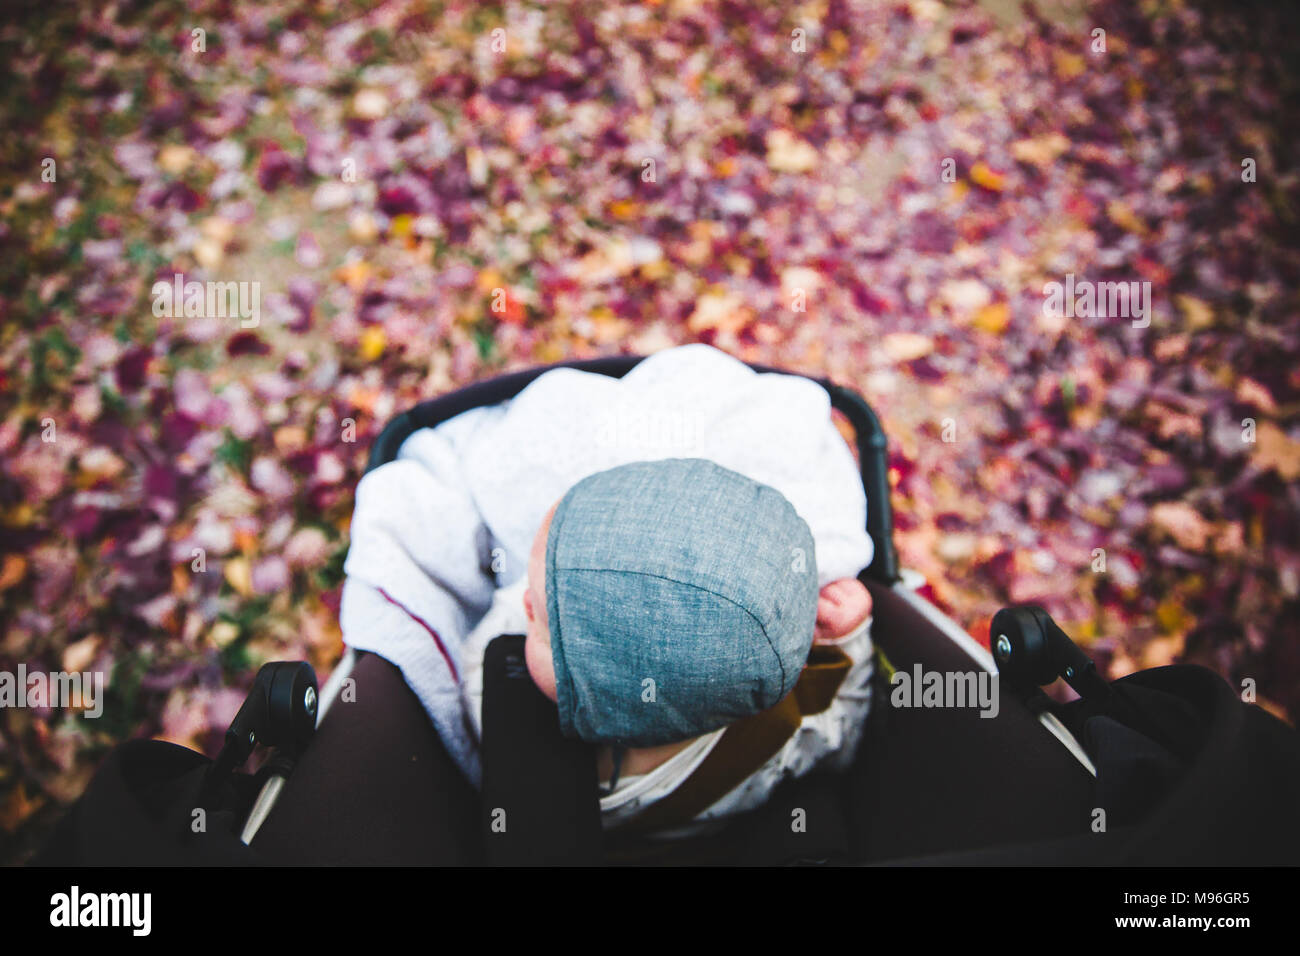 Baby sitting in stroller around leaves - Stock Image